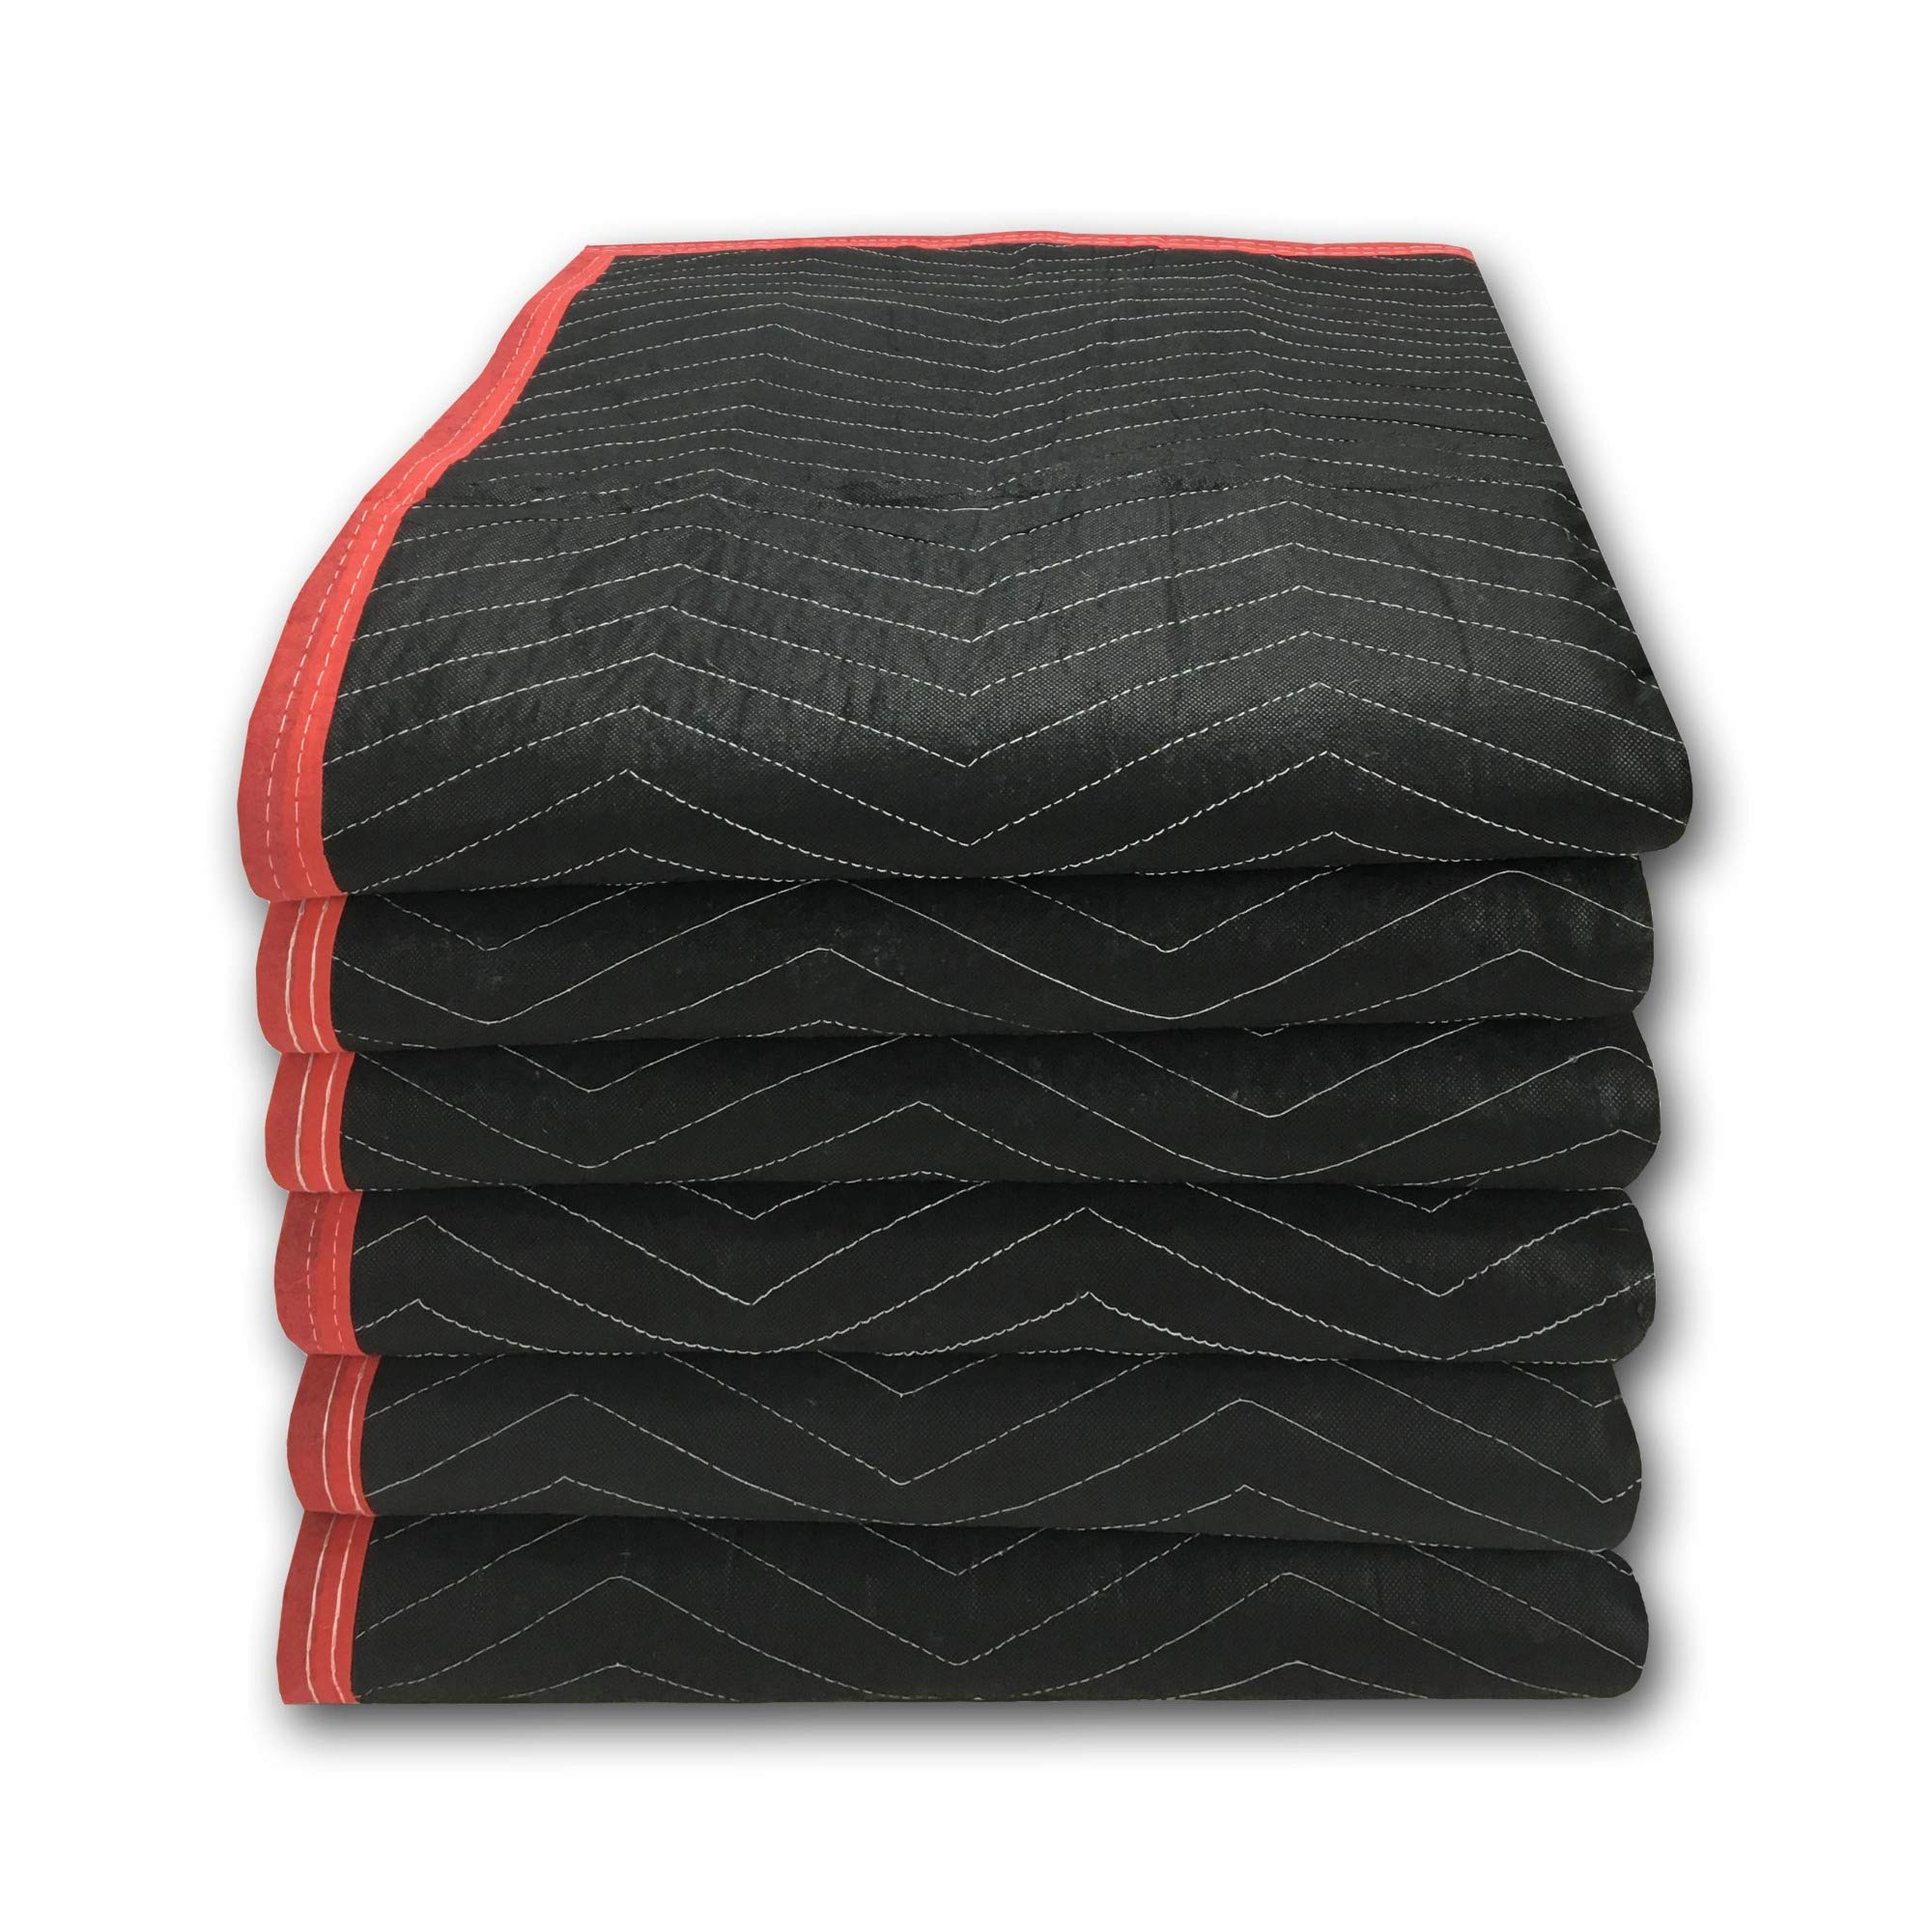 6 Pack of Deluxe Moving Blankets - 5.42lbs/Each - Protective Shipping by Uboxes (Image #1)